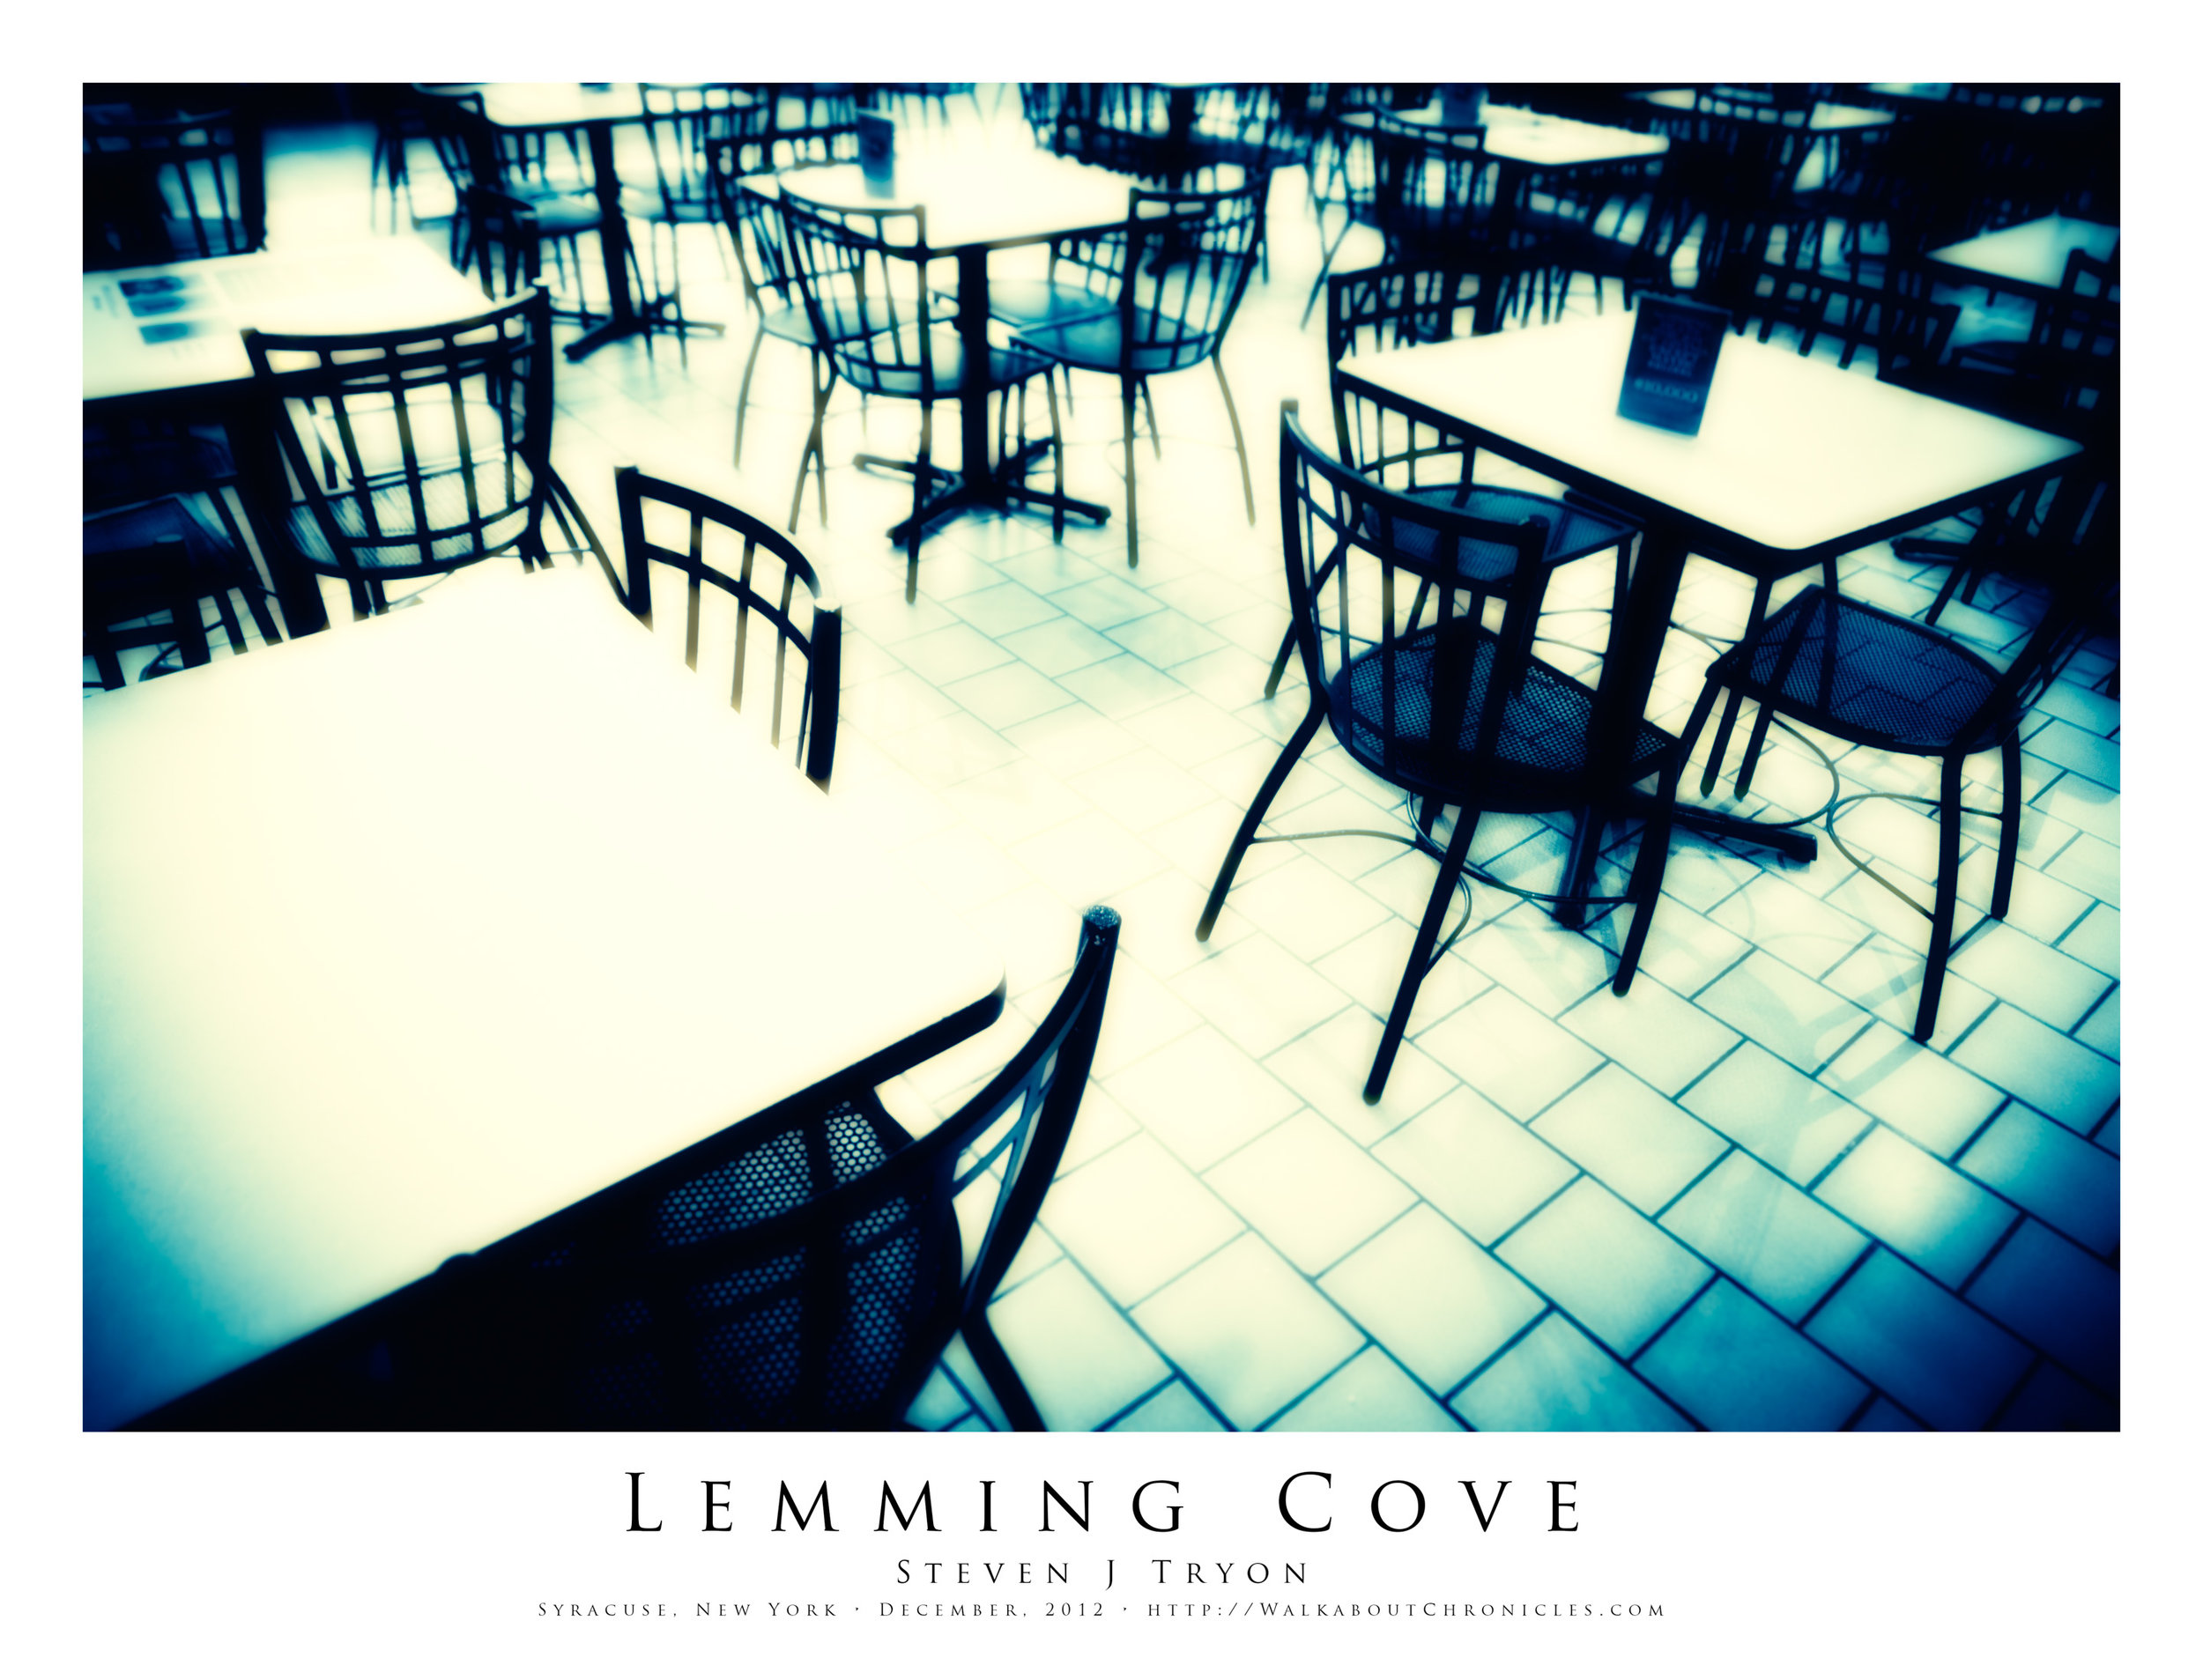 Lemming Cove